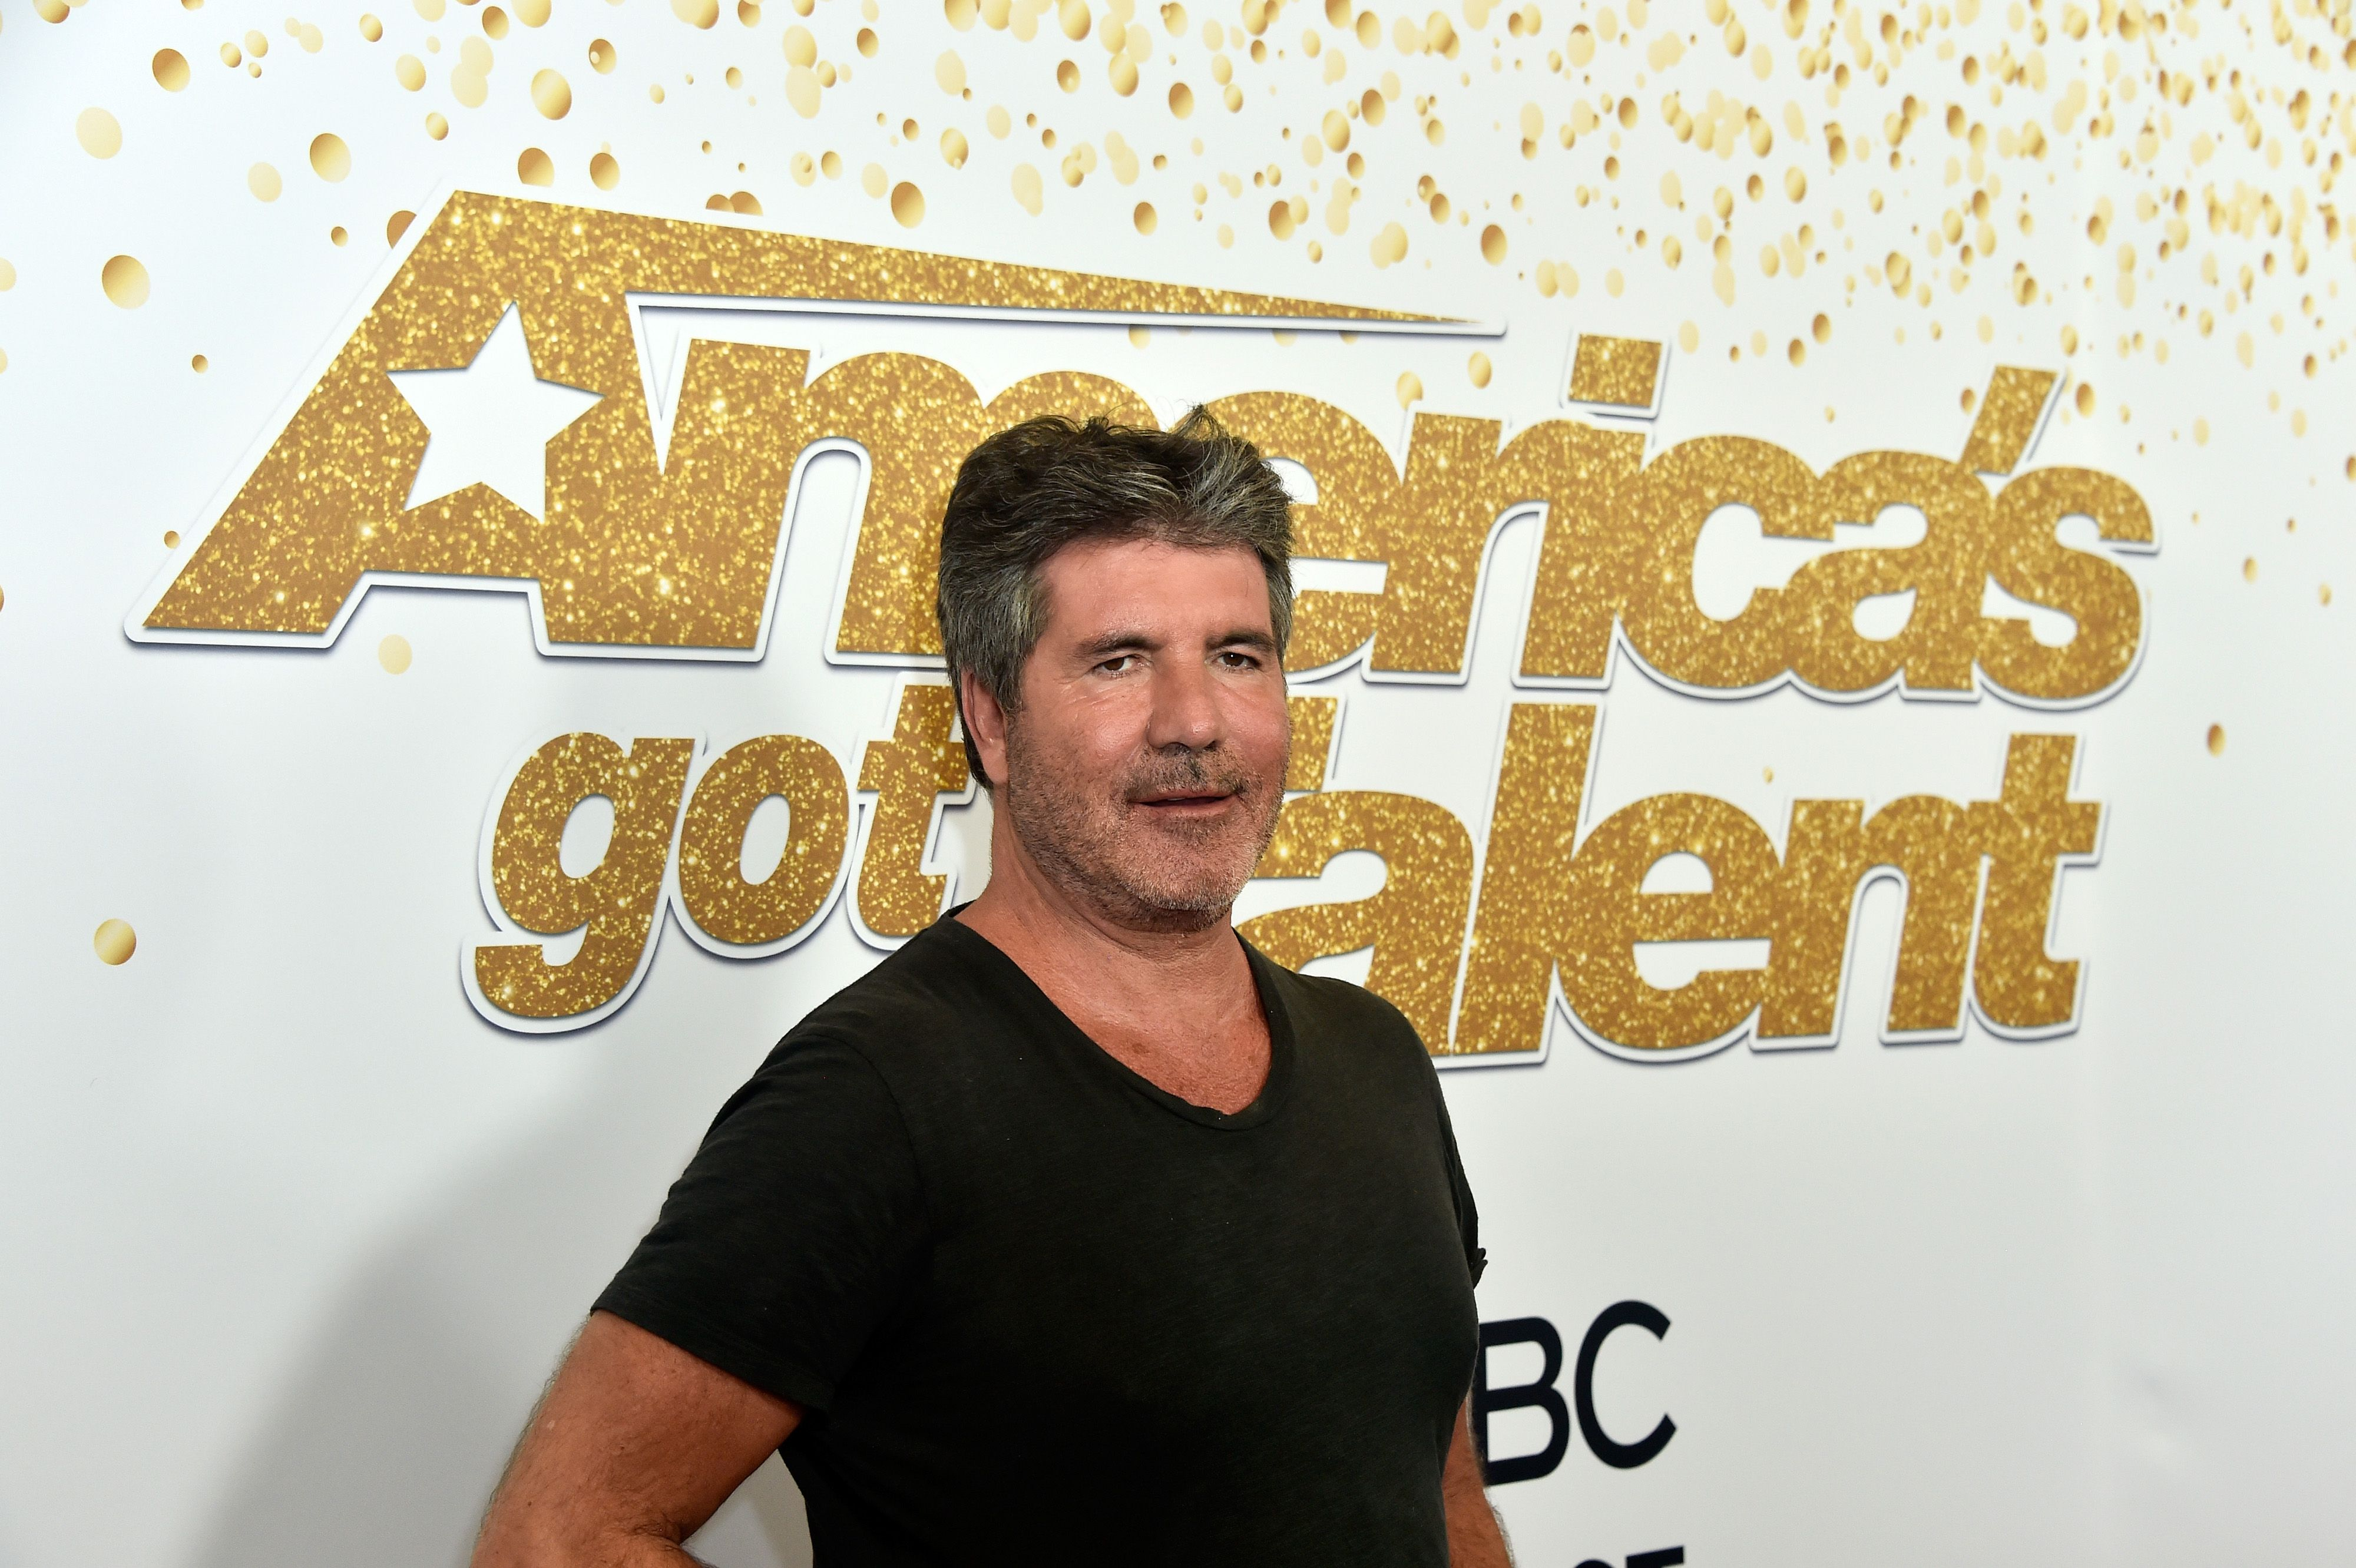 """Simon Cowell at the """"America's Got Talent"""" season 13 live show on August 14, 2018, in Hollywood, California 